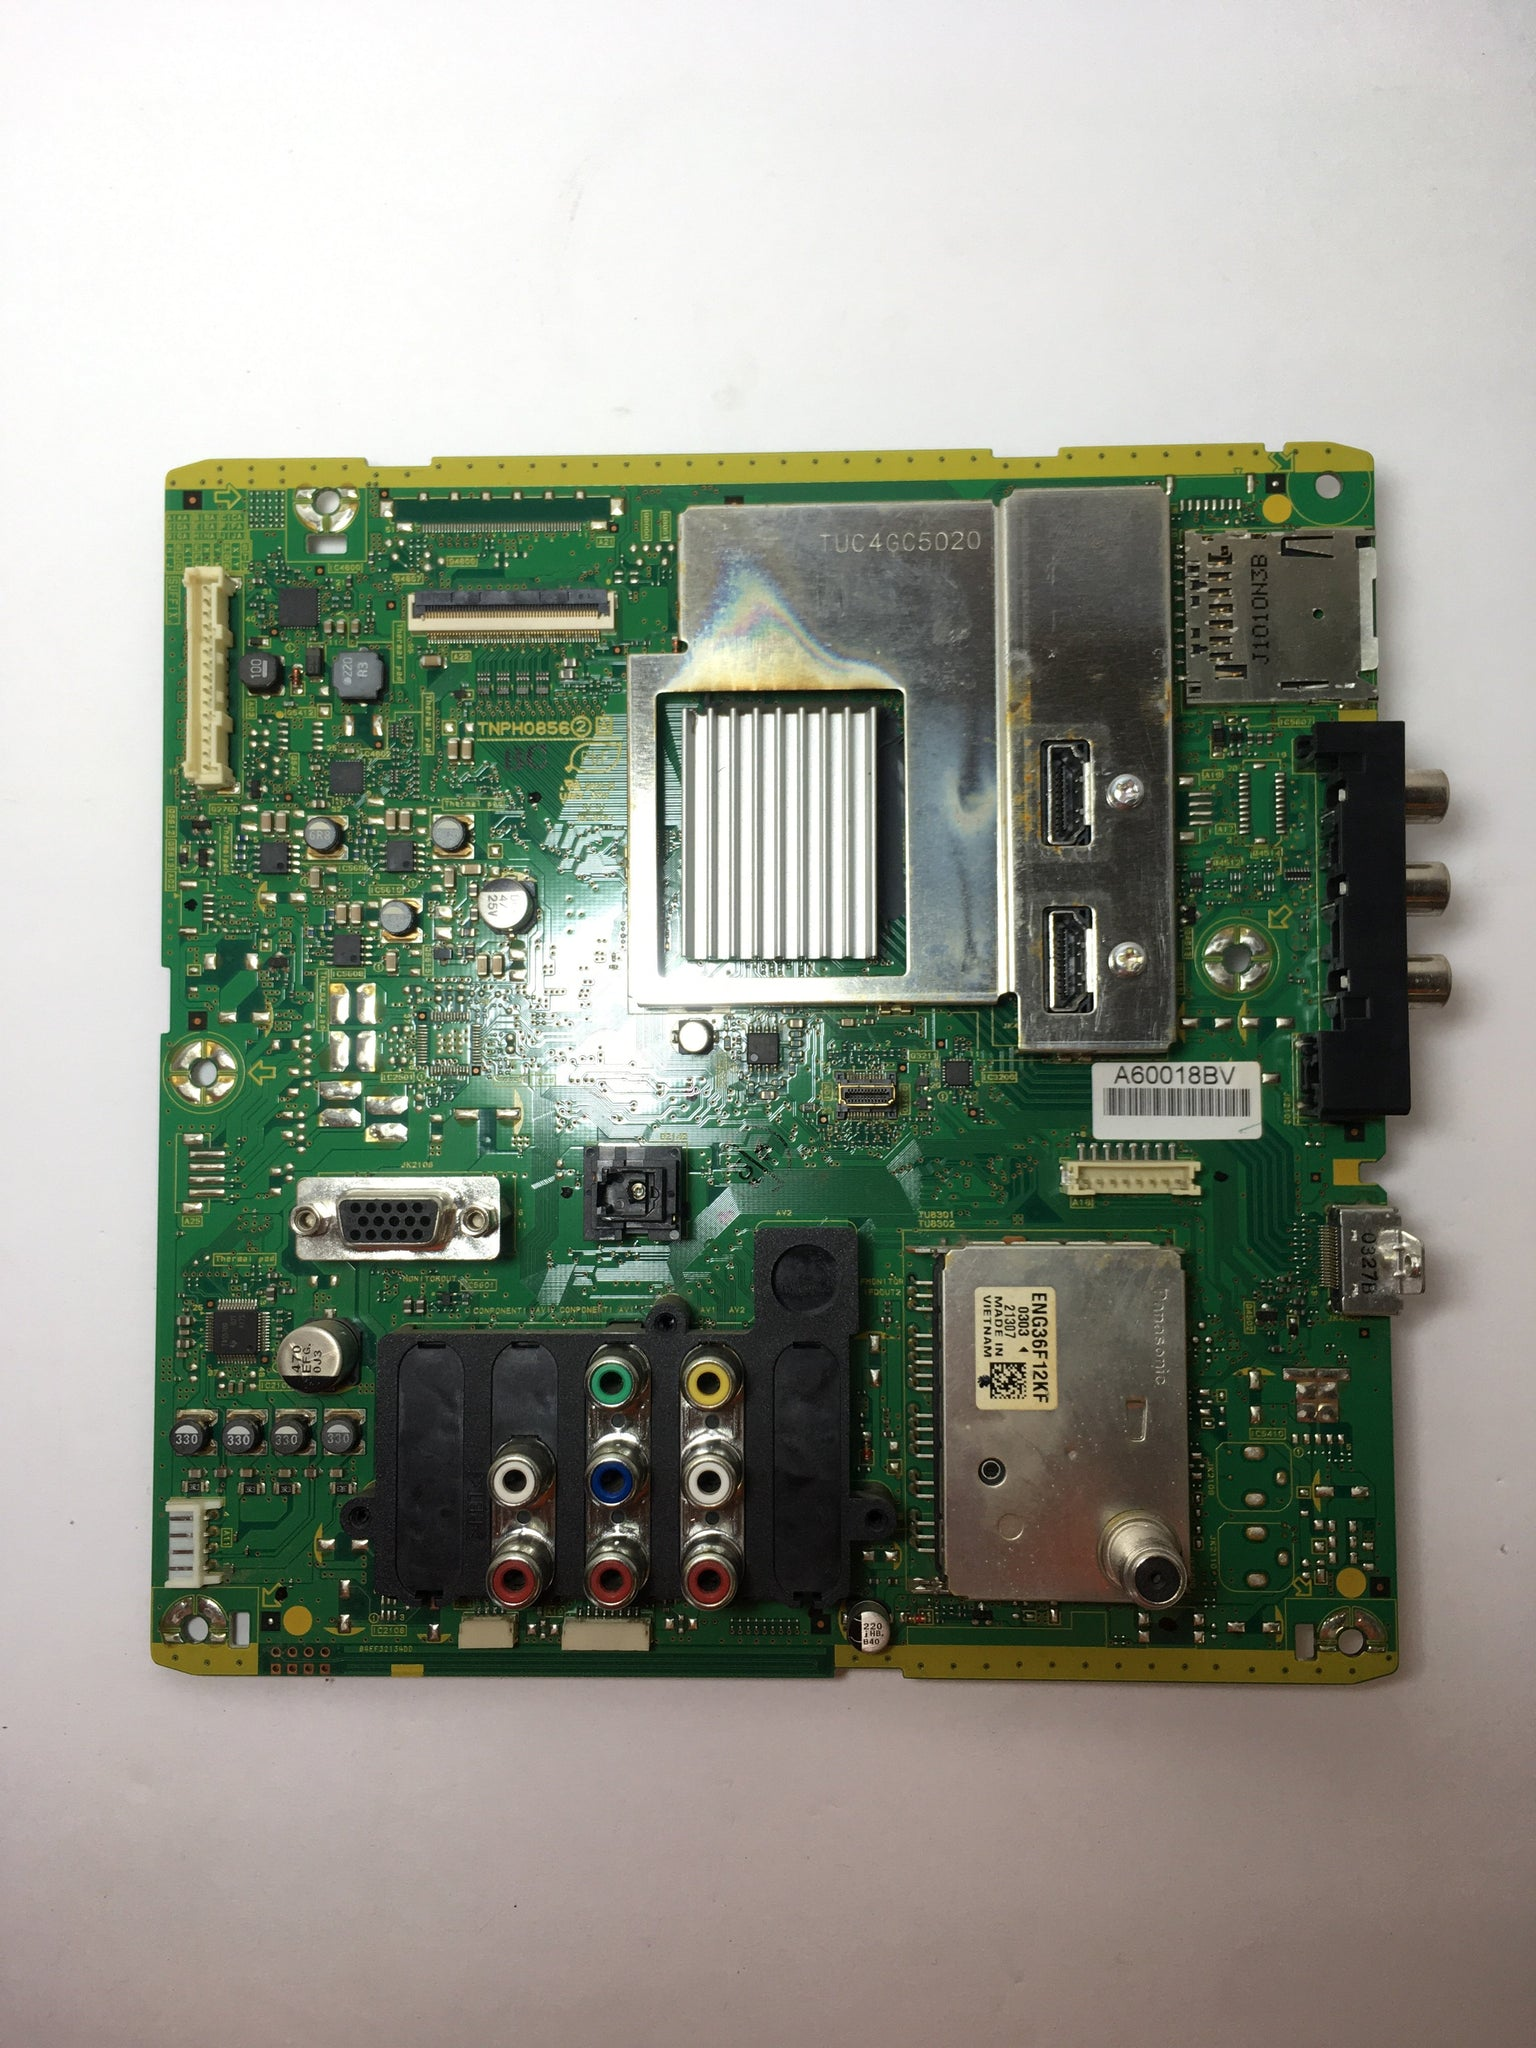 Panasonic TZT/A10QMM (TNPH0856BC) A Board for TC-L32X2